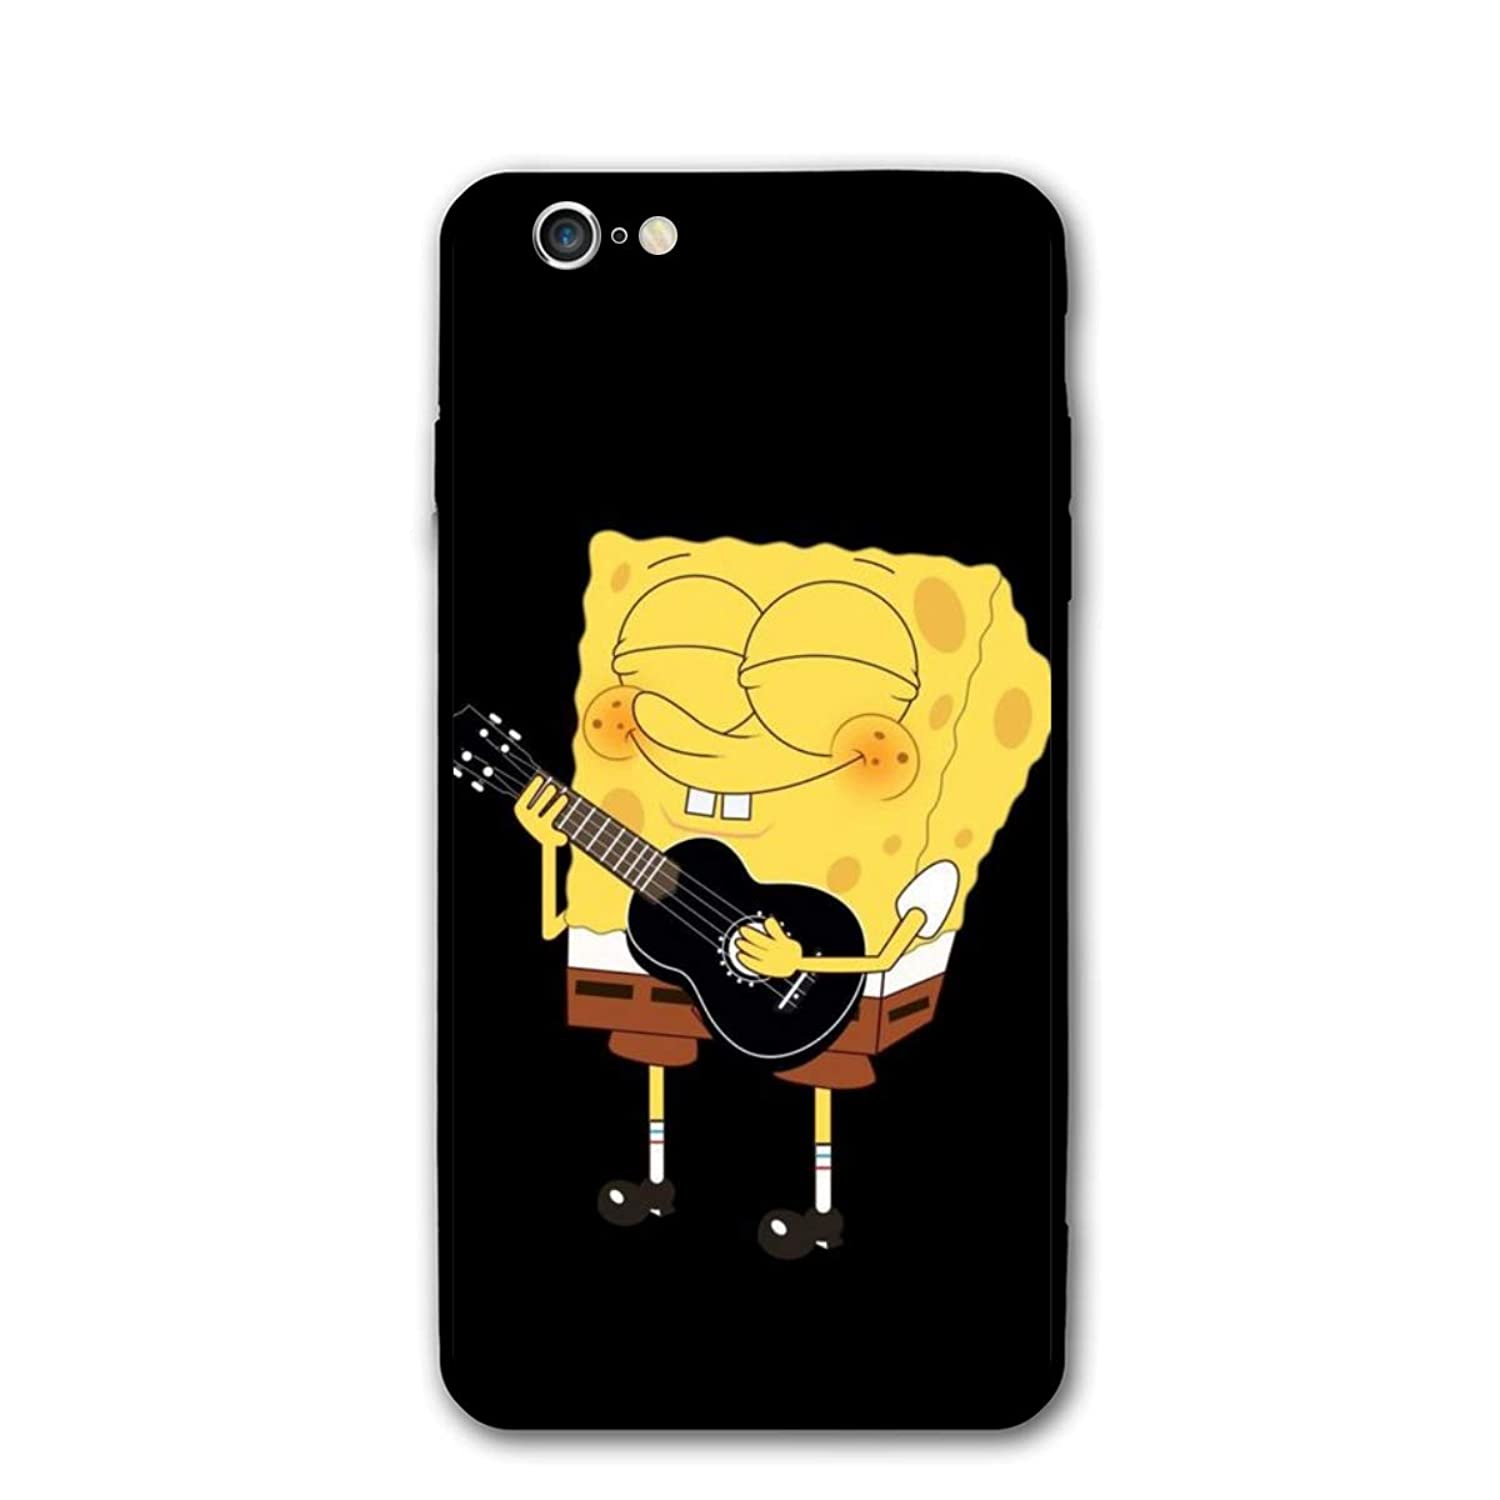 SWDFFG iPhone 6 iPhone 6S Case- Stylish Spongebob Playing Guitar PC Slim Shockproof Flexible Back Protective Case for iPhone 6 / iPhone 6S